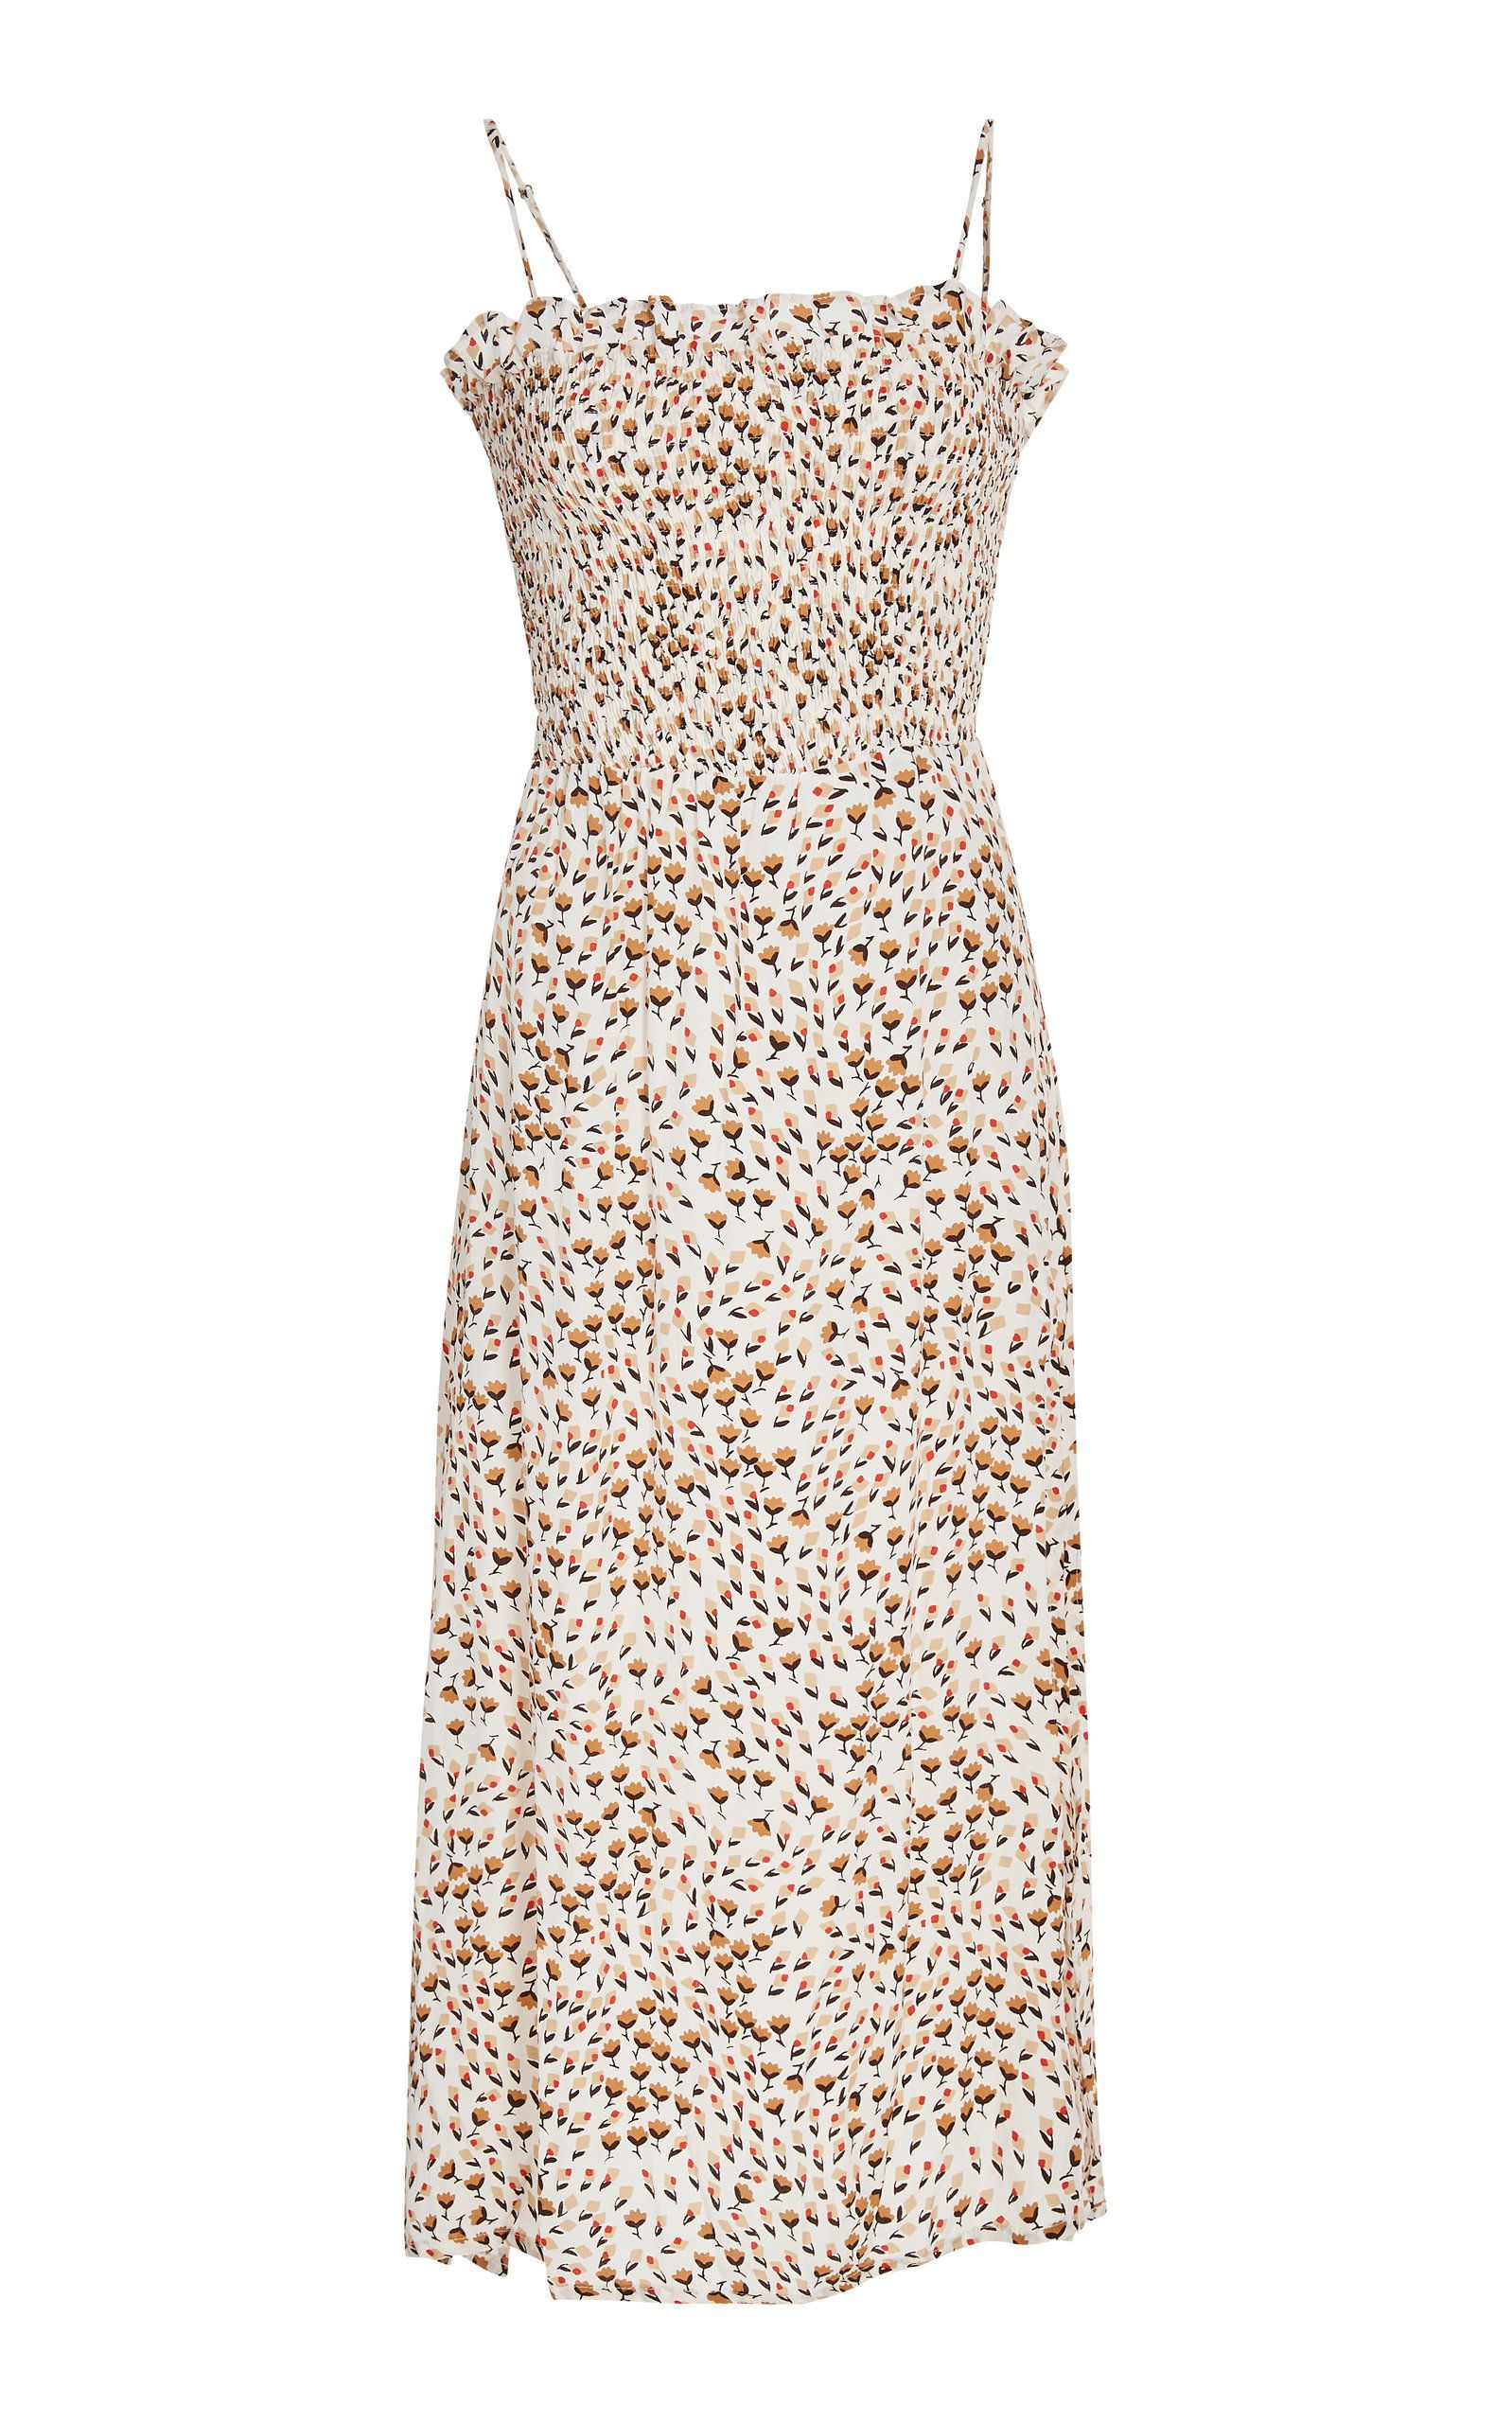 ad431d1f5185 Solange Midi Dress by FAITHFULL THE BRAND Now Available on Moda Operandi